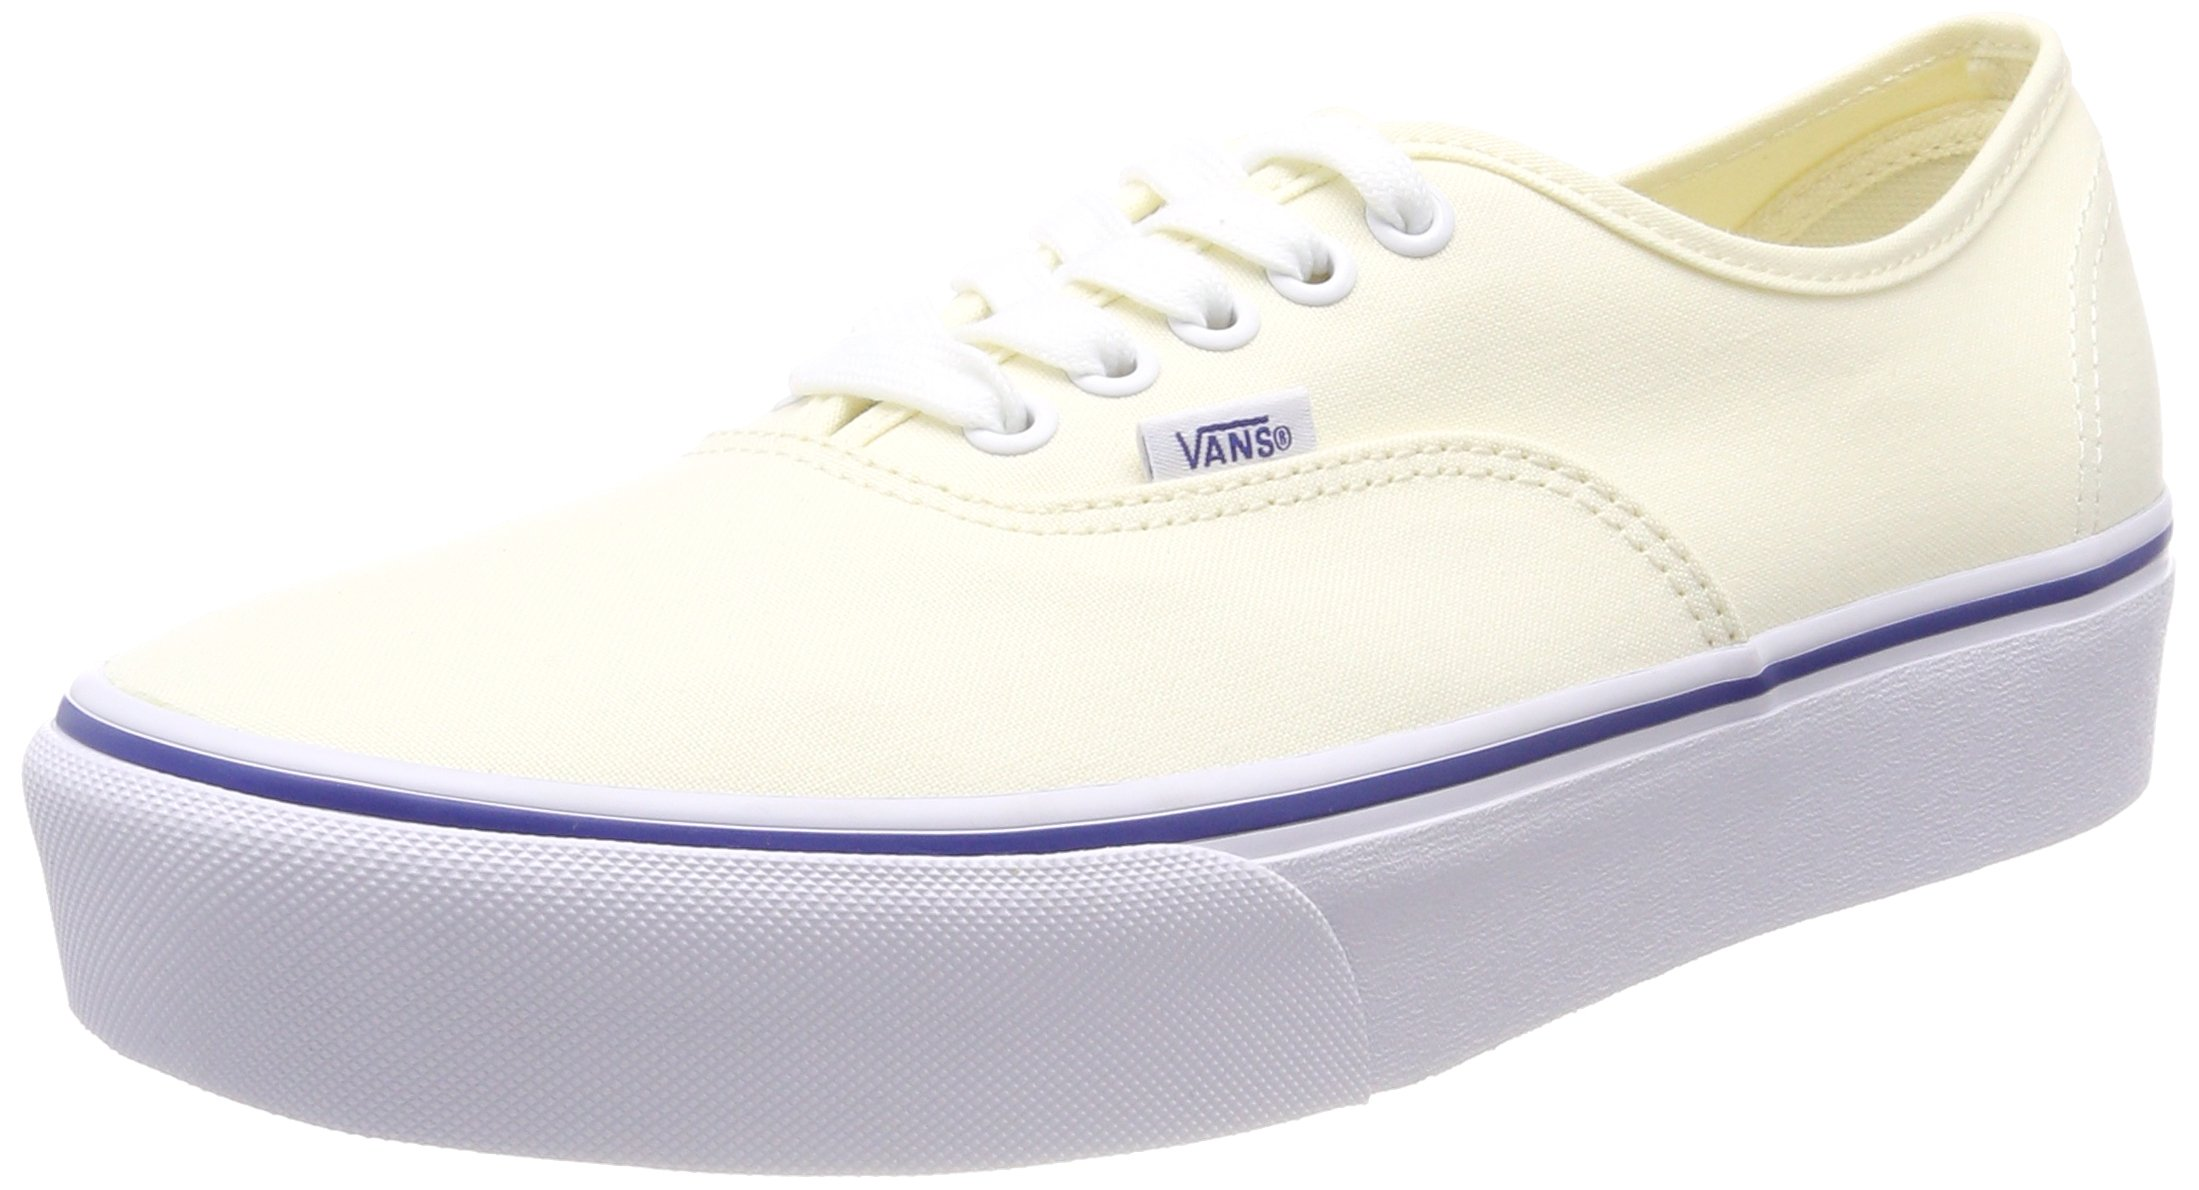 Vans Women's Authentic Platform 2.0 Trainers - 71my4M6MhYL - Vans Women's Authentic Platform 2.0 Trainers